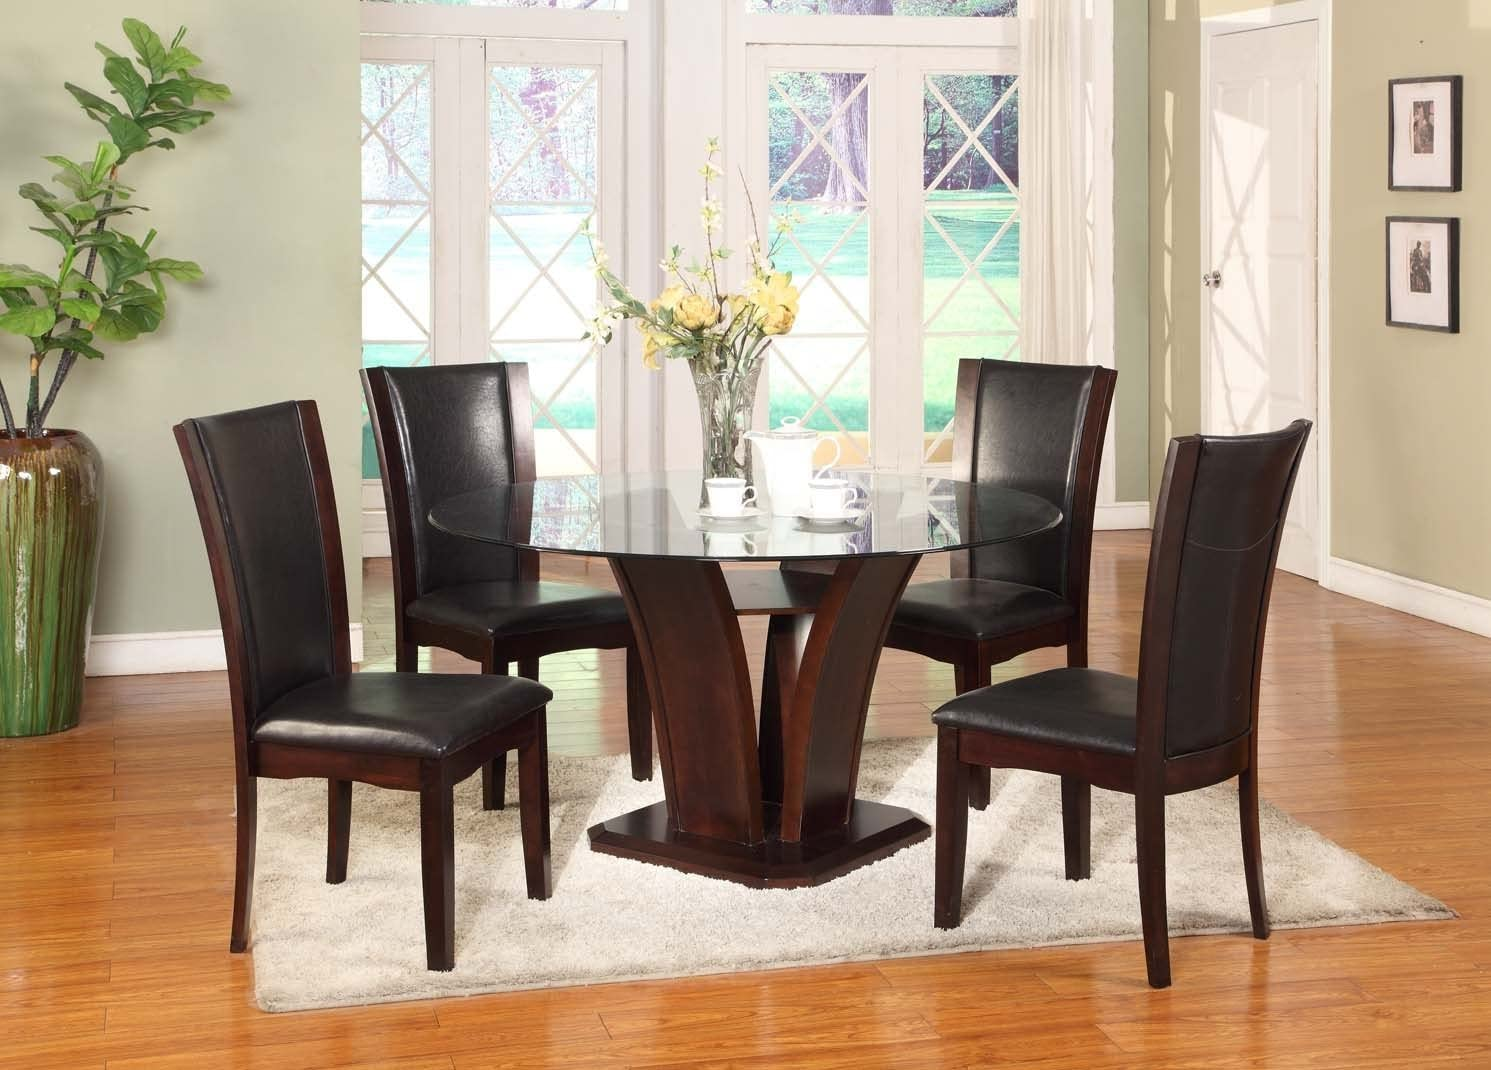 Roundhill Furniture Clar 5-Piece Glass Top Dining Set, Dark Cappuccino Finish